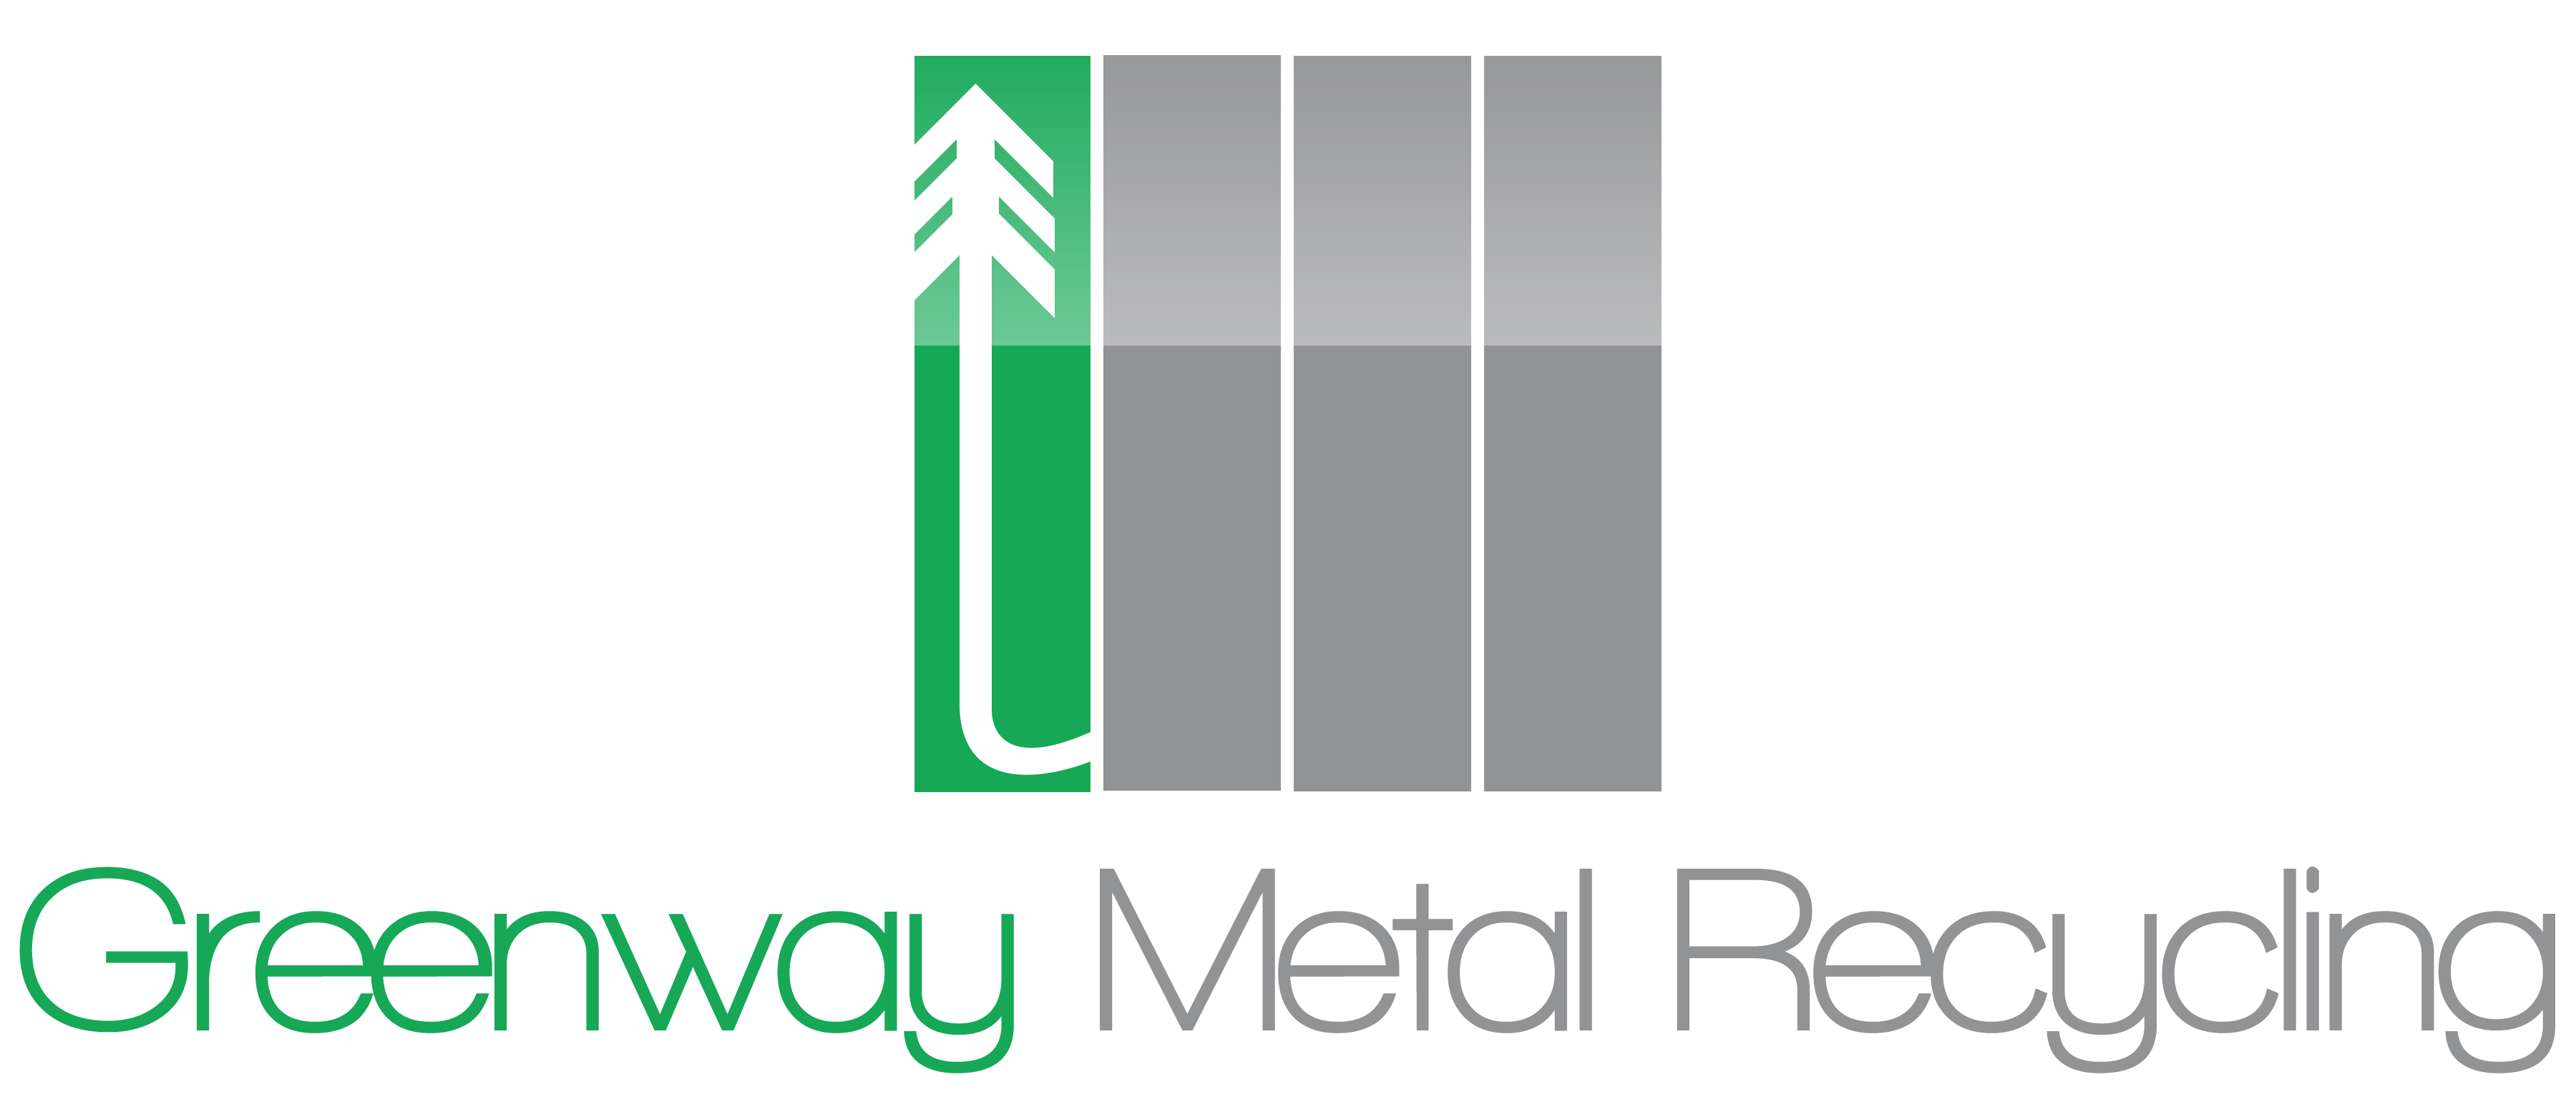 Greenway Metal Recycling, Inc., An Industrial Scrap Metal Recycling Company In Chicago Offers Quick Pay In 5 Days